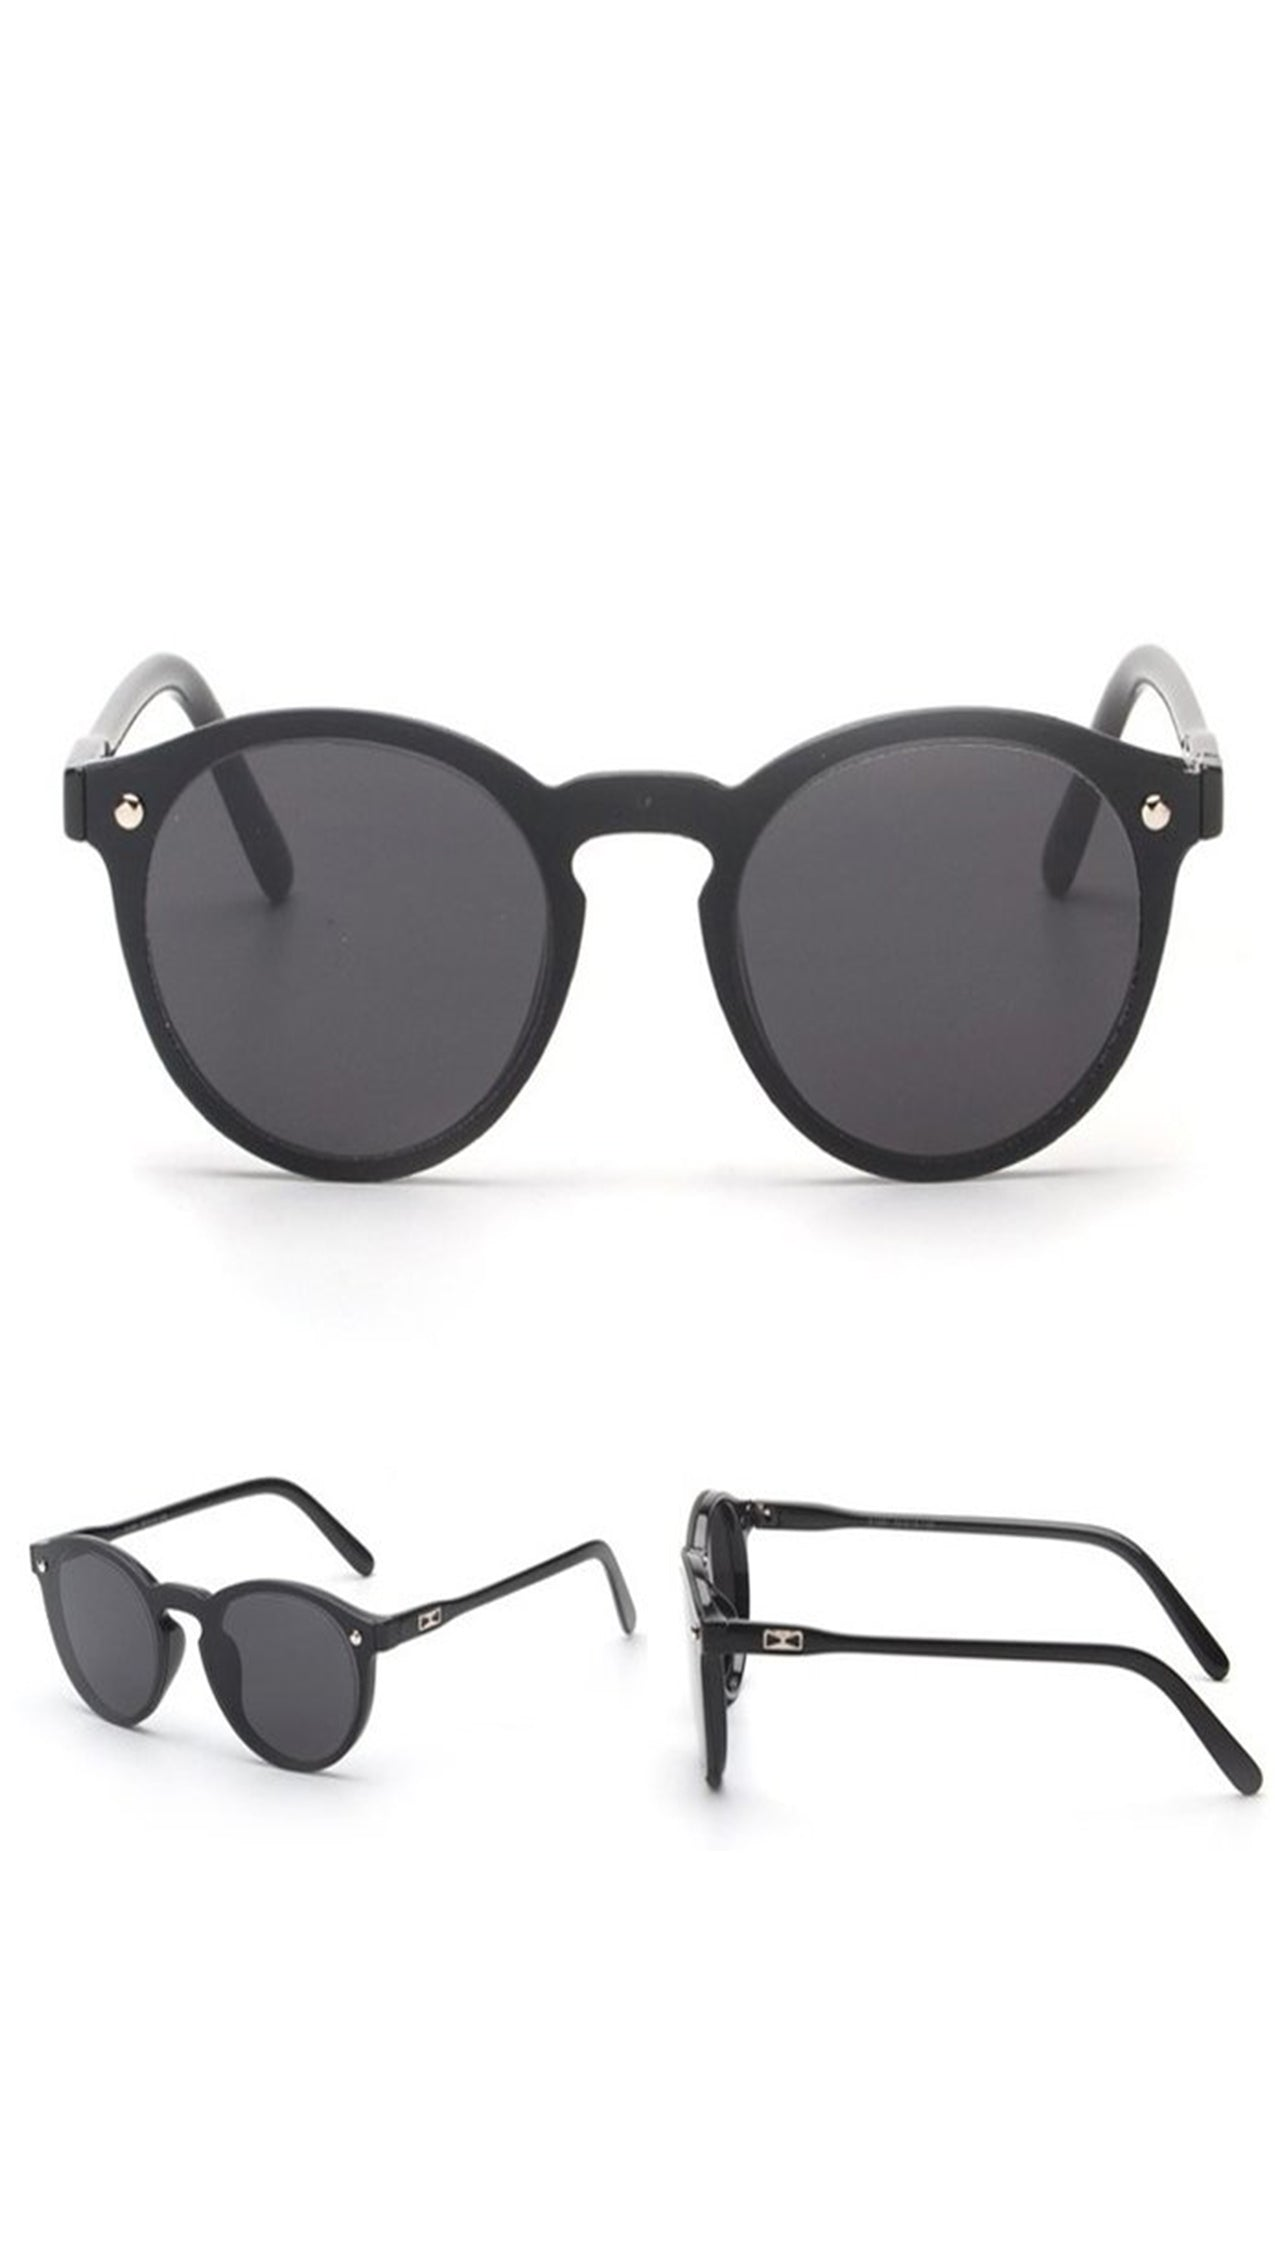 Fashion Shades Mirror Reflective Single Lens SUnglasses Black